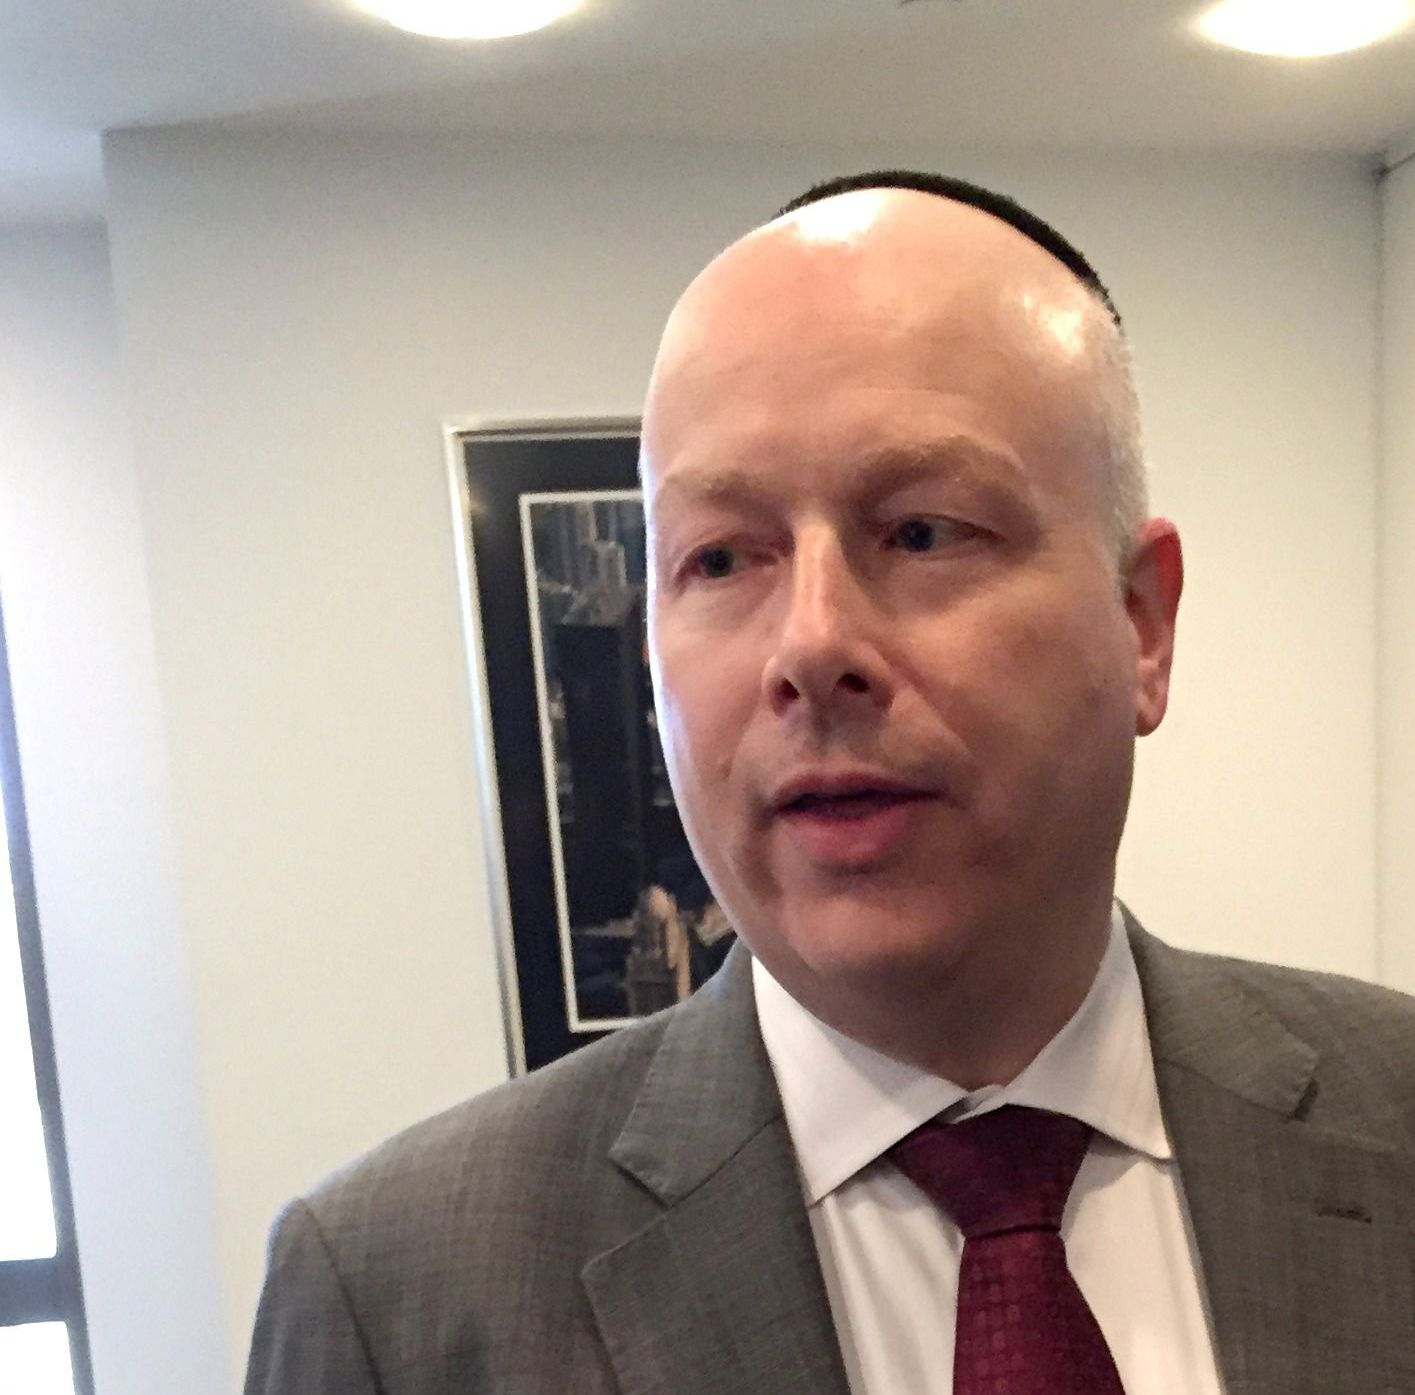 Trump's Lawyer: Asked a question about Israel, Trump deferred to Jason Greenblatt, chief legal officer of the Trump Organization.